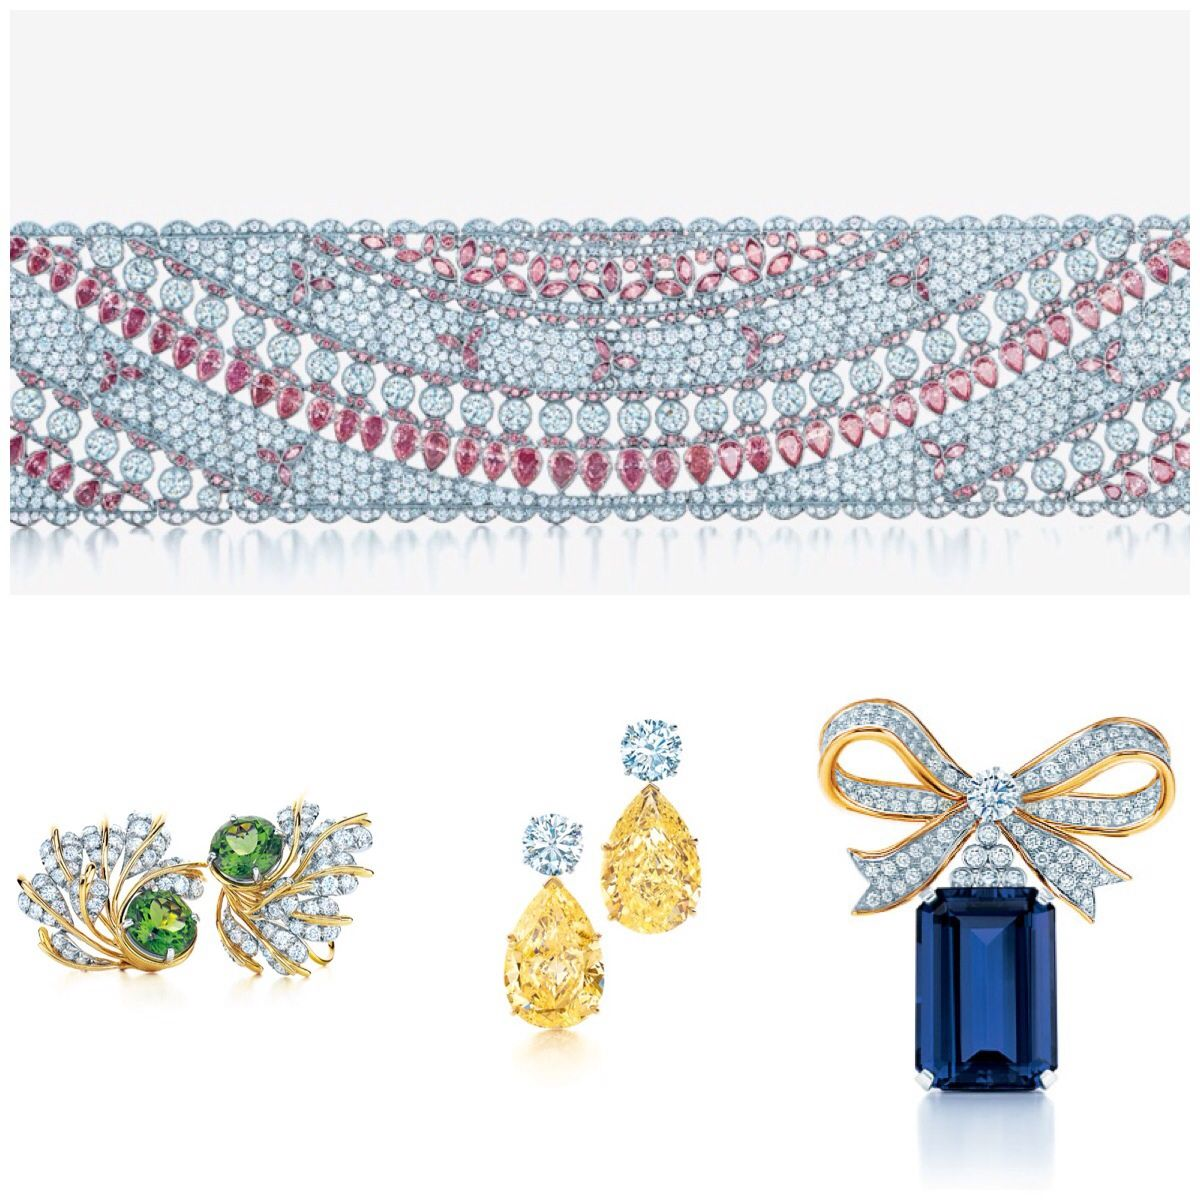 Tiffany & Co. The best bedazzler on the planet!